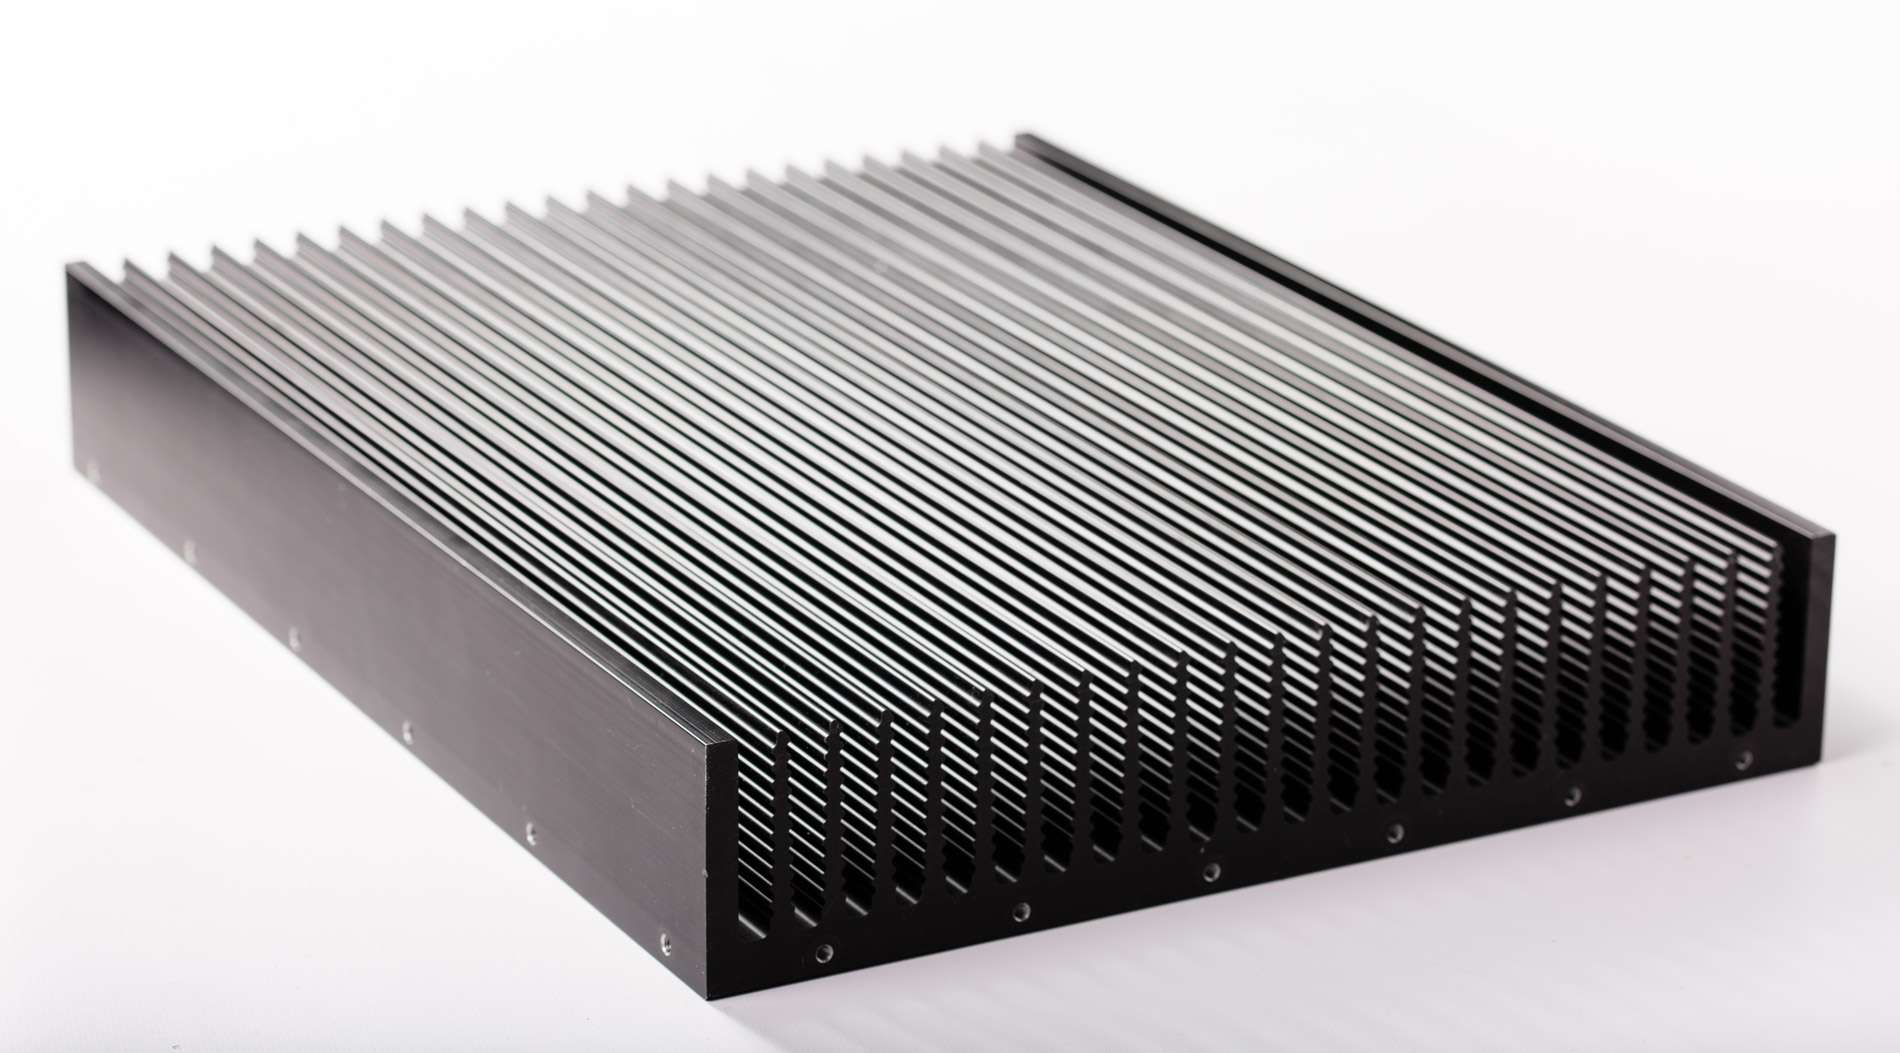 Design your heat sink to operate with natural convection in two easy steps